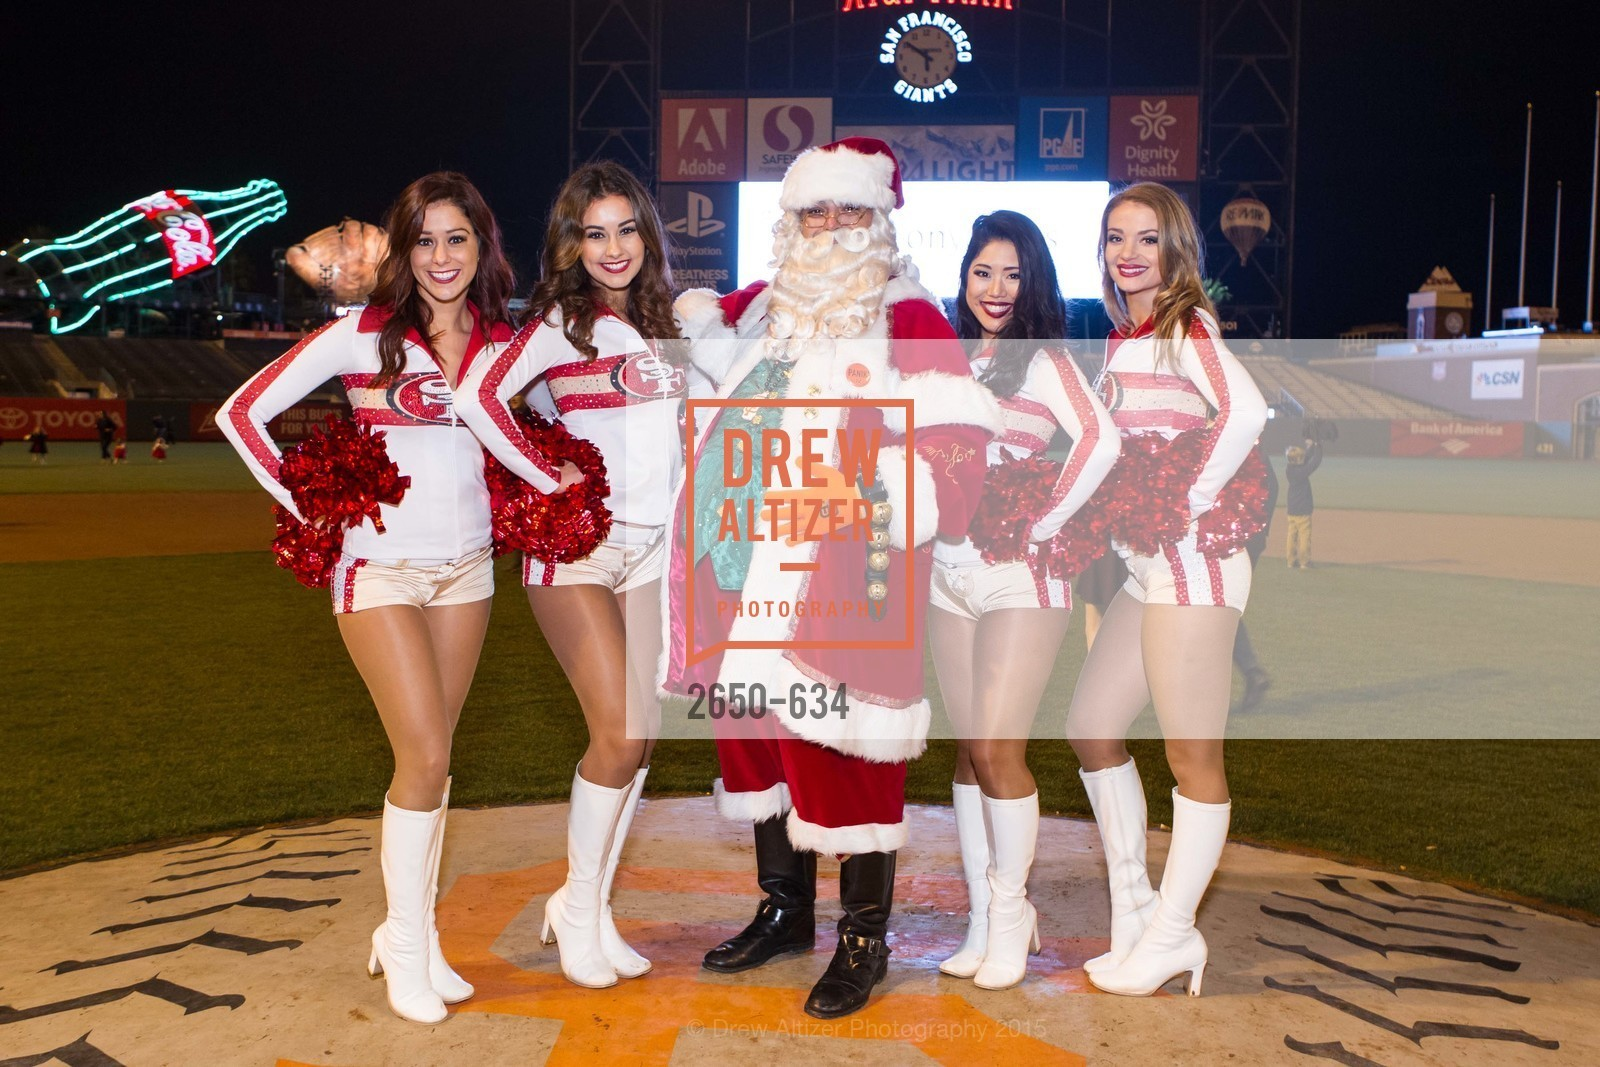 Casey, Jordan, Yuri, Karina, Holiday Heroes 2015, AT&T Park, December 7th, 2015,Drew Altizer, Drew Altizer Photography, full-service event agency, private events, San Francisco photographer, photographer California